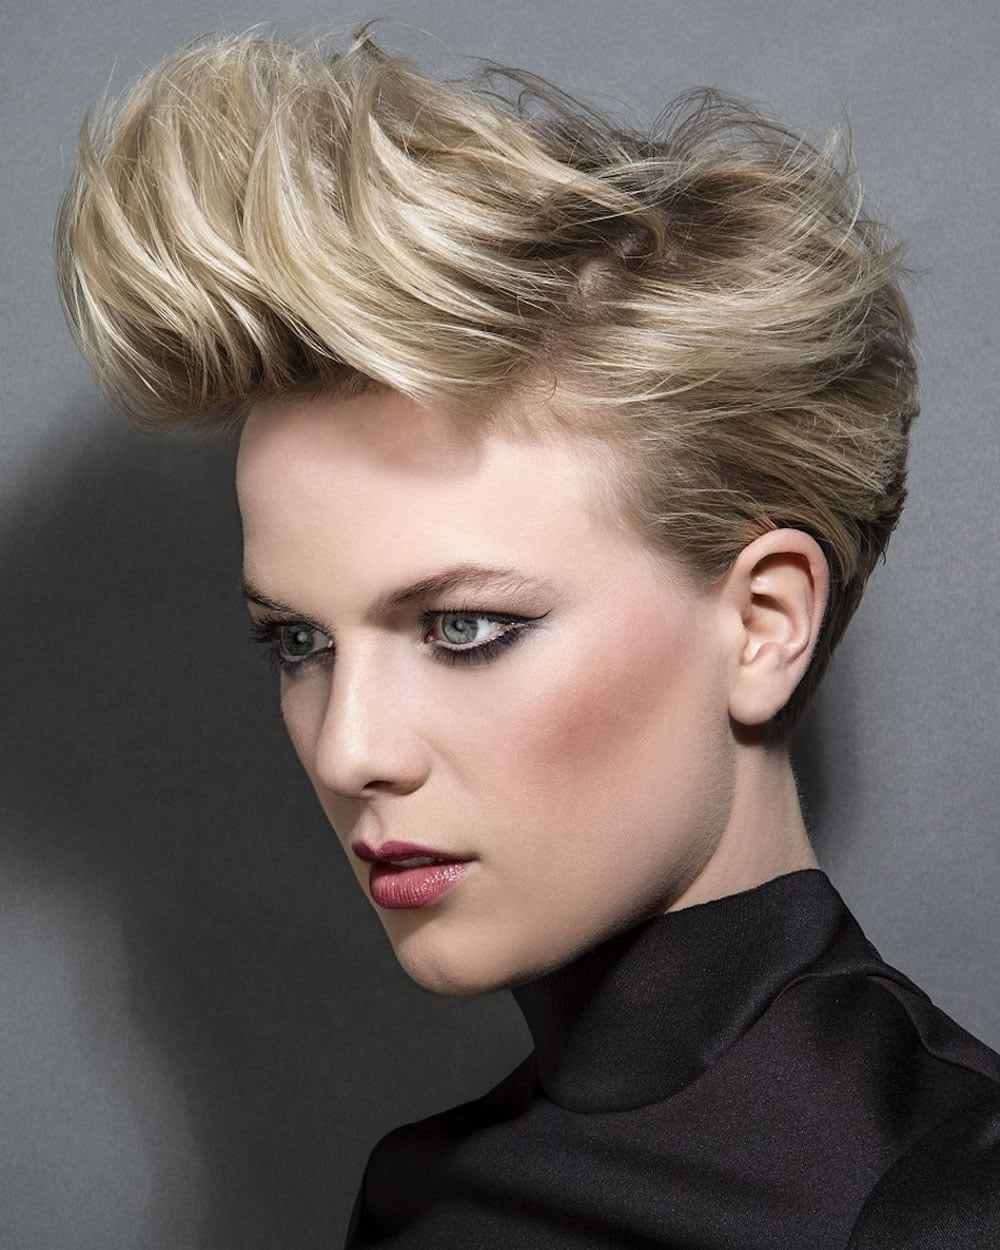 2018 Pixie Hairstyles For Short Hair & Easy + Fast Pixie